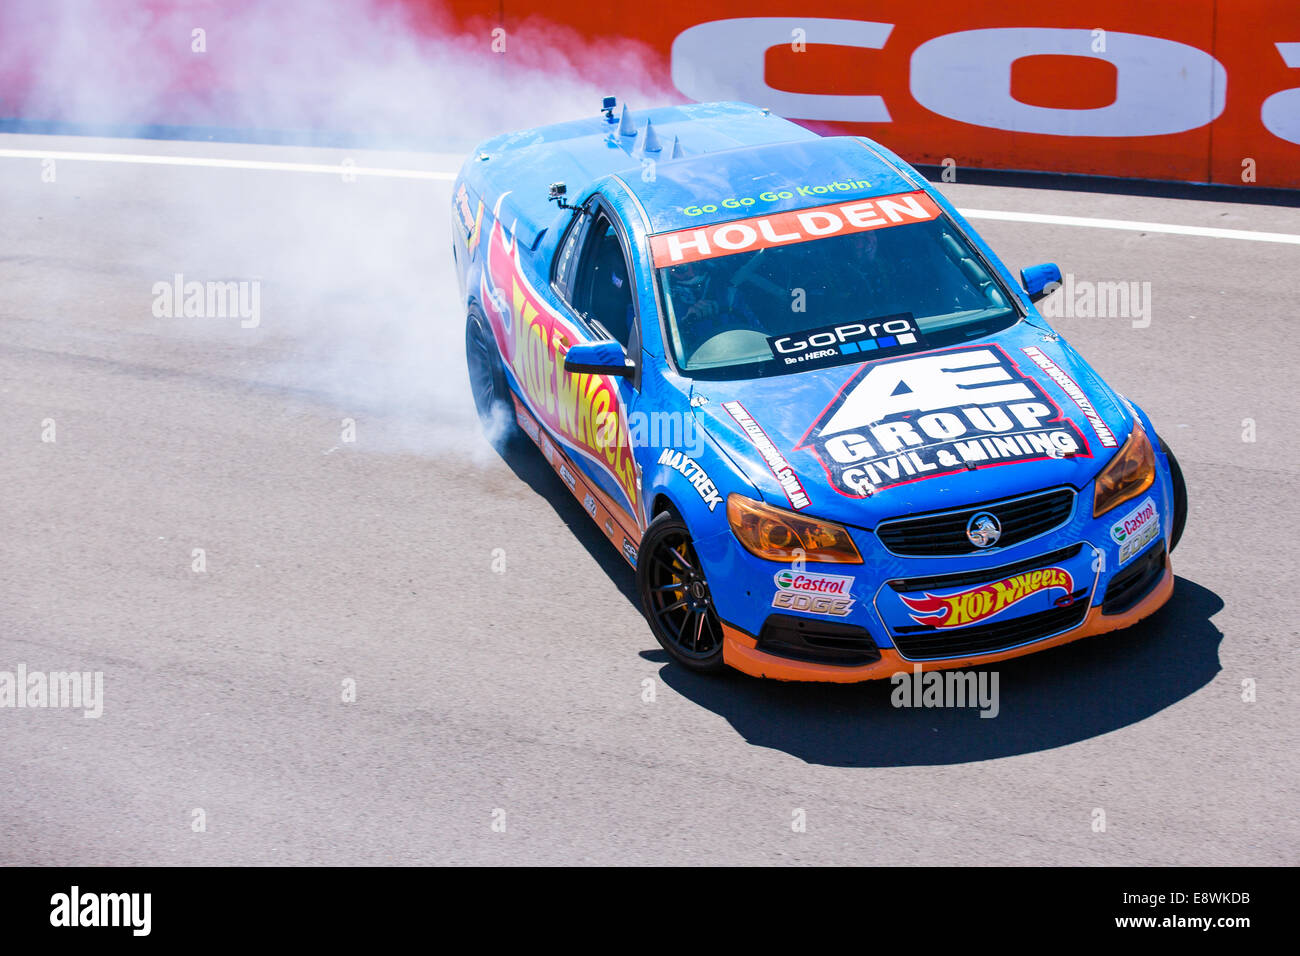 A blue Hotwheels display team 'Ute' or Pick Up truck drifting round the iconic Bathurst racetrack - Stock Image